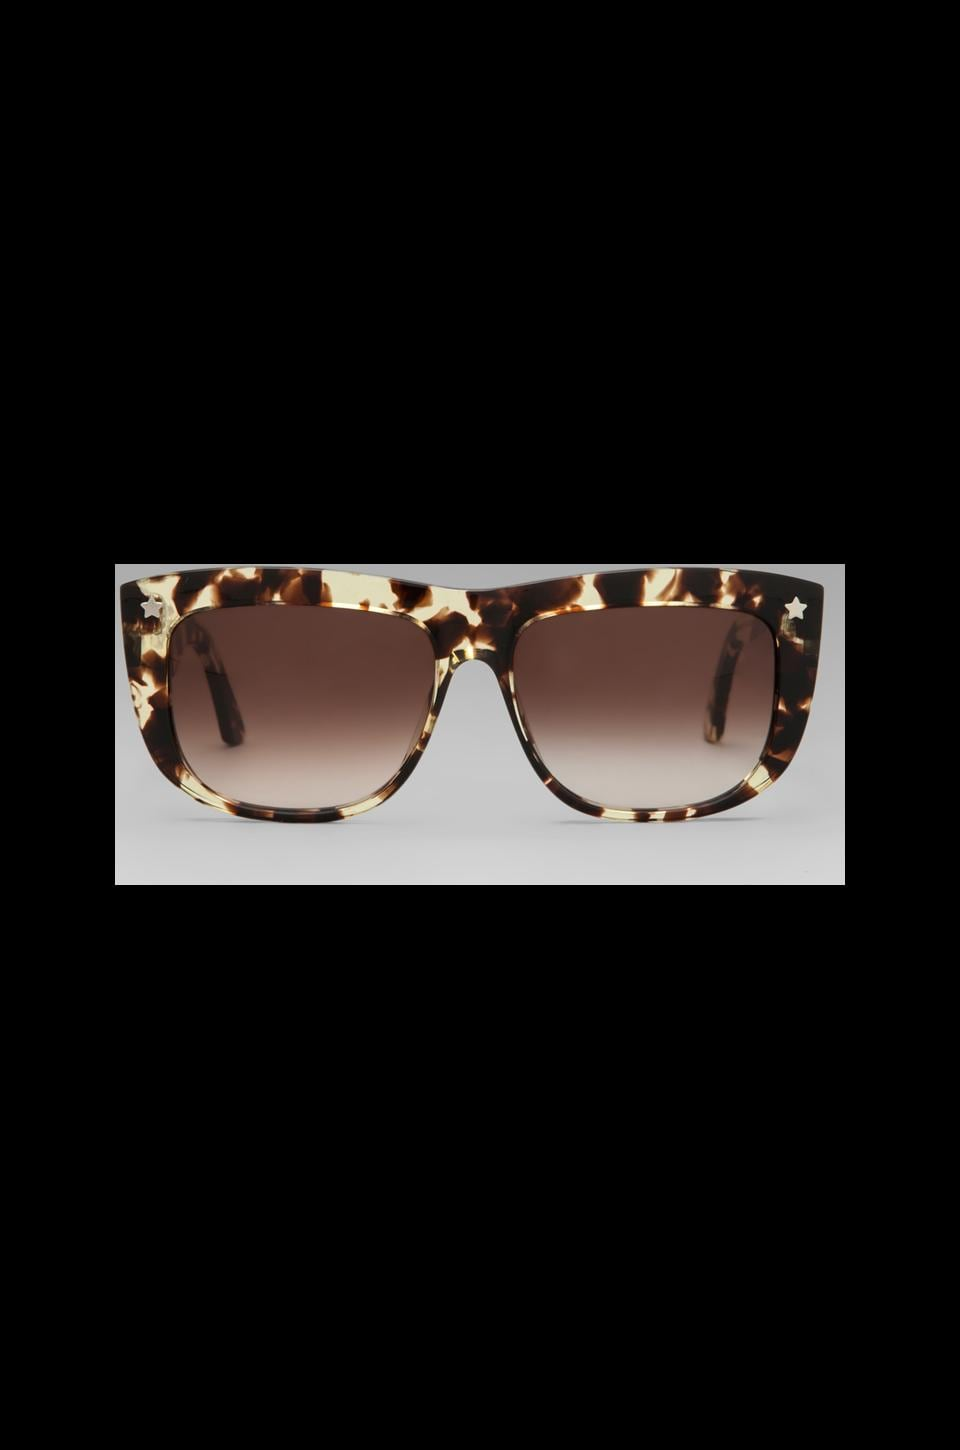 Wildfox Couture Cruiser Sunglasses in Tokyo Tortoise/Brown